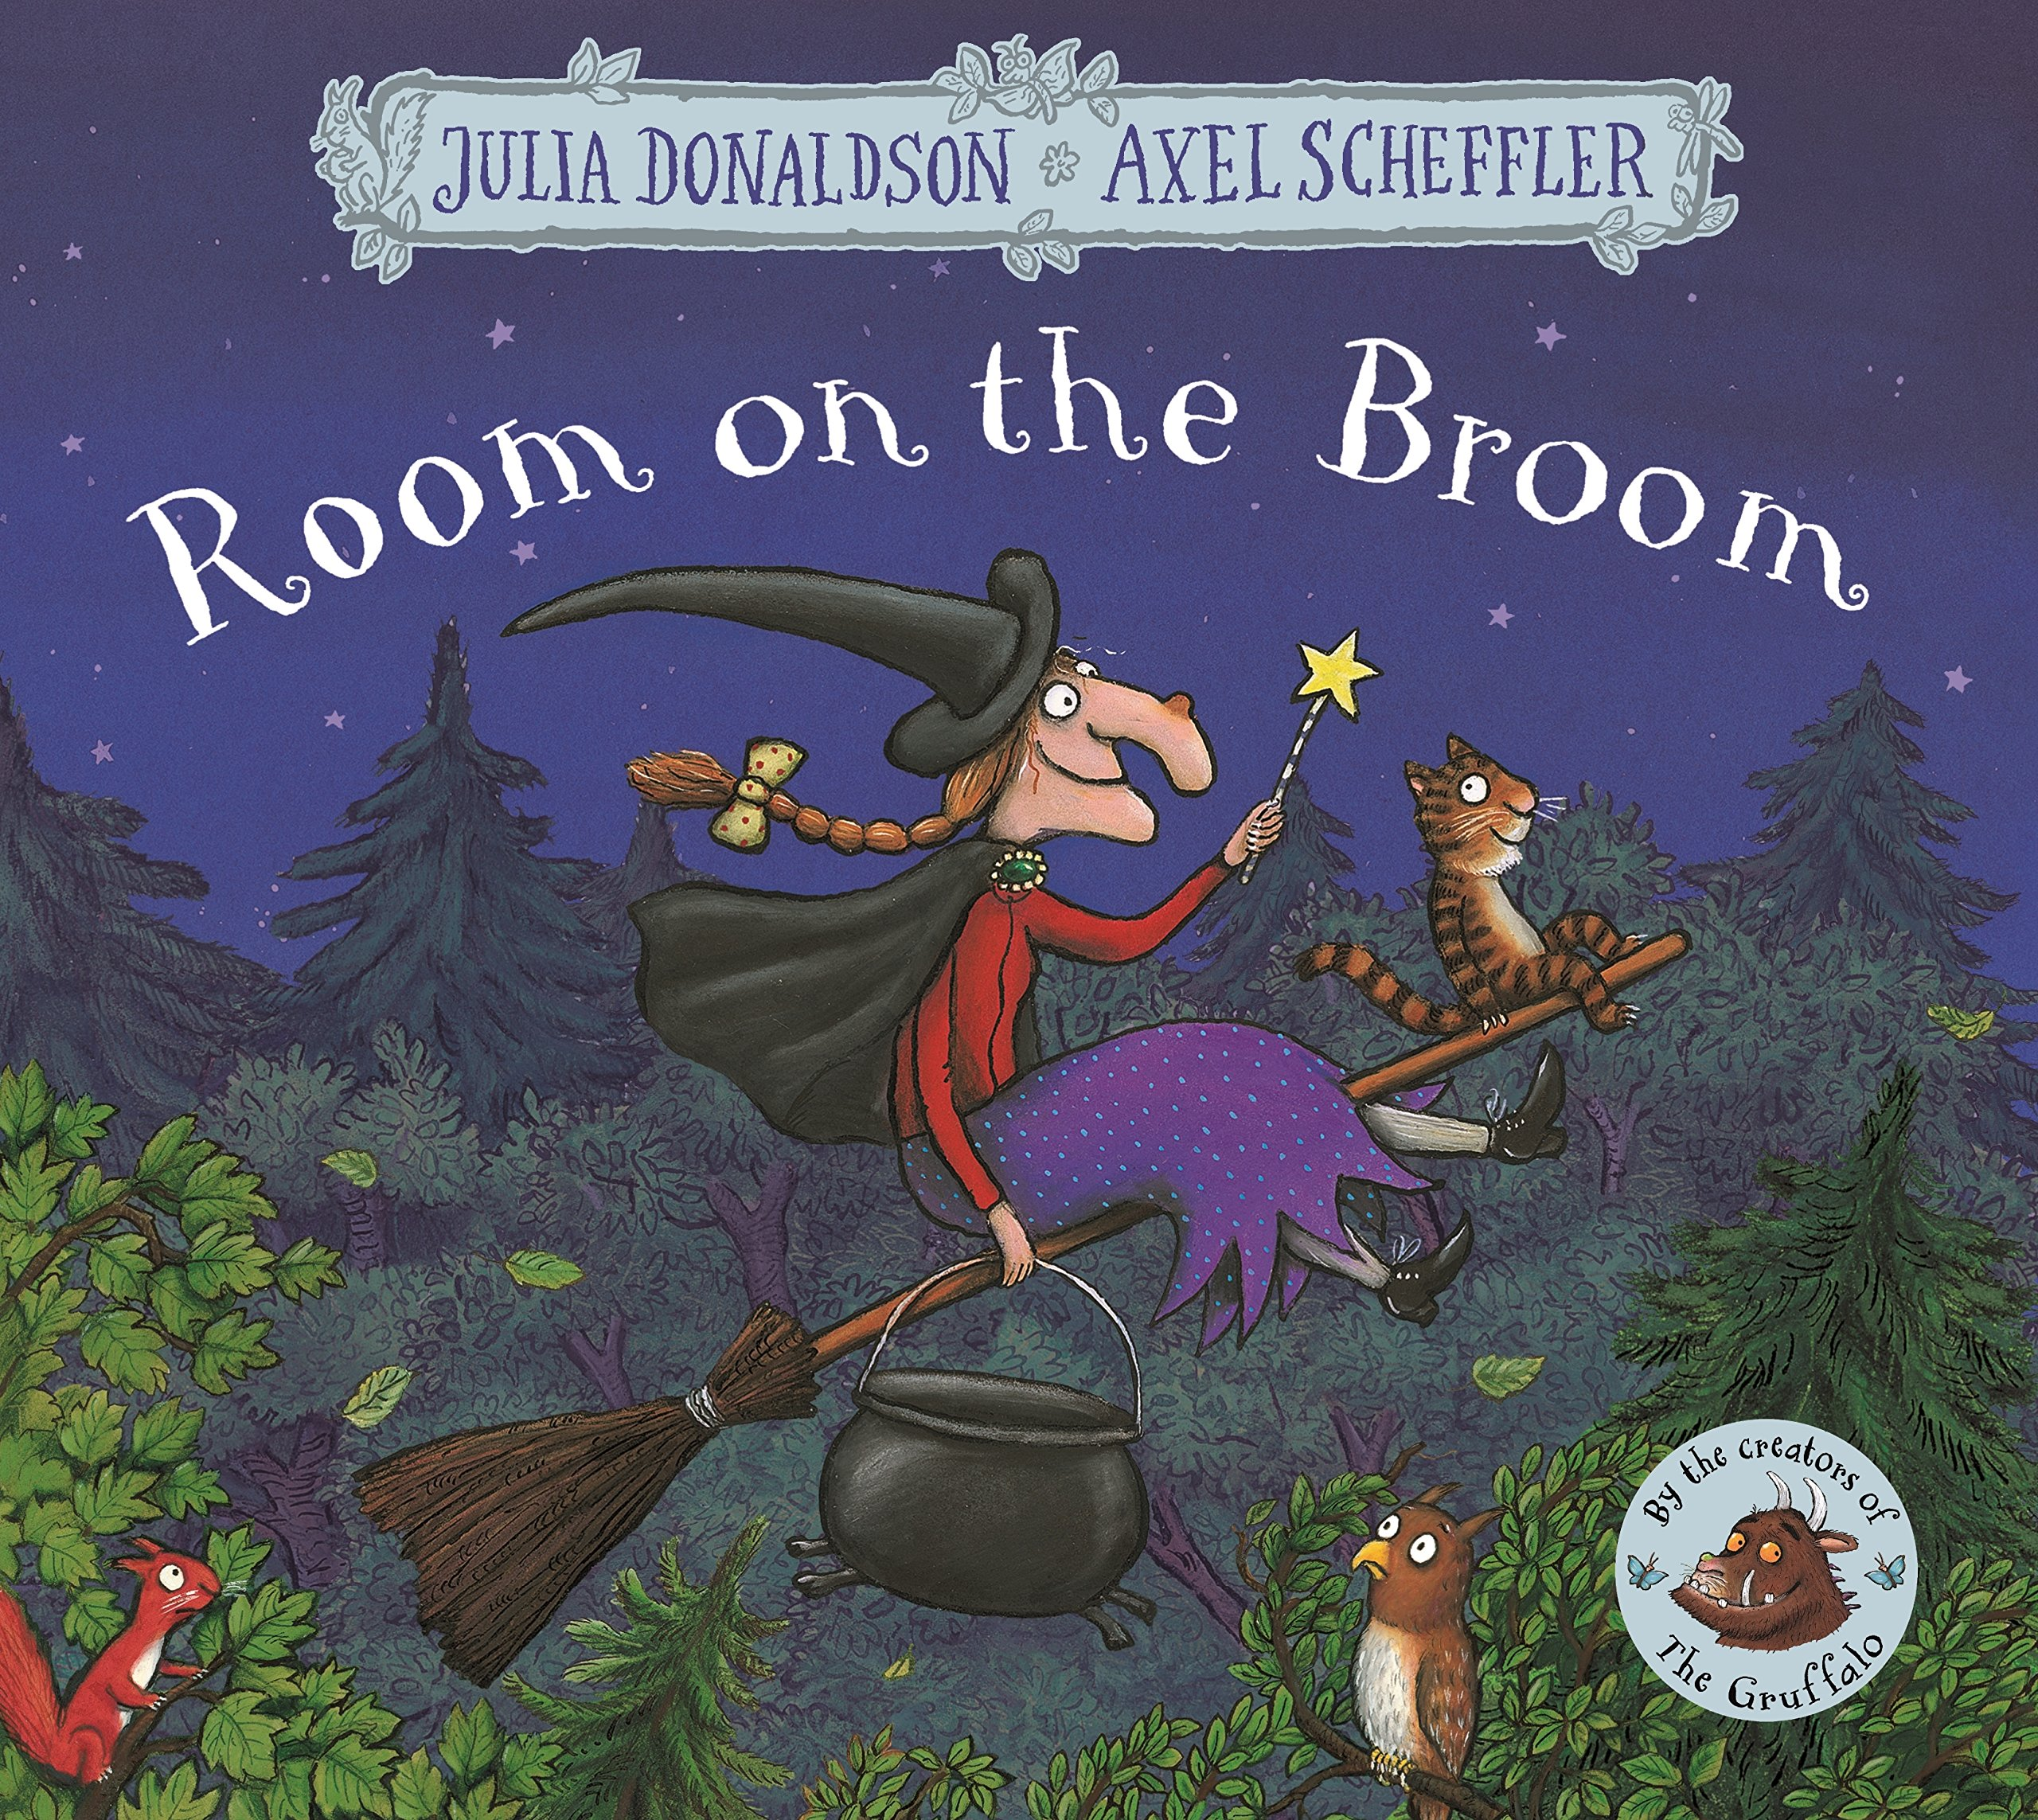 Follow the Author. Julia Donaldson